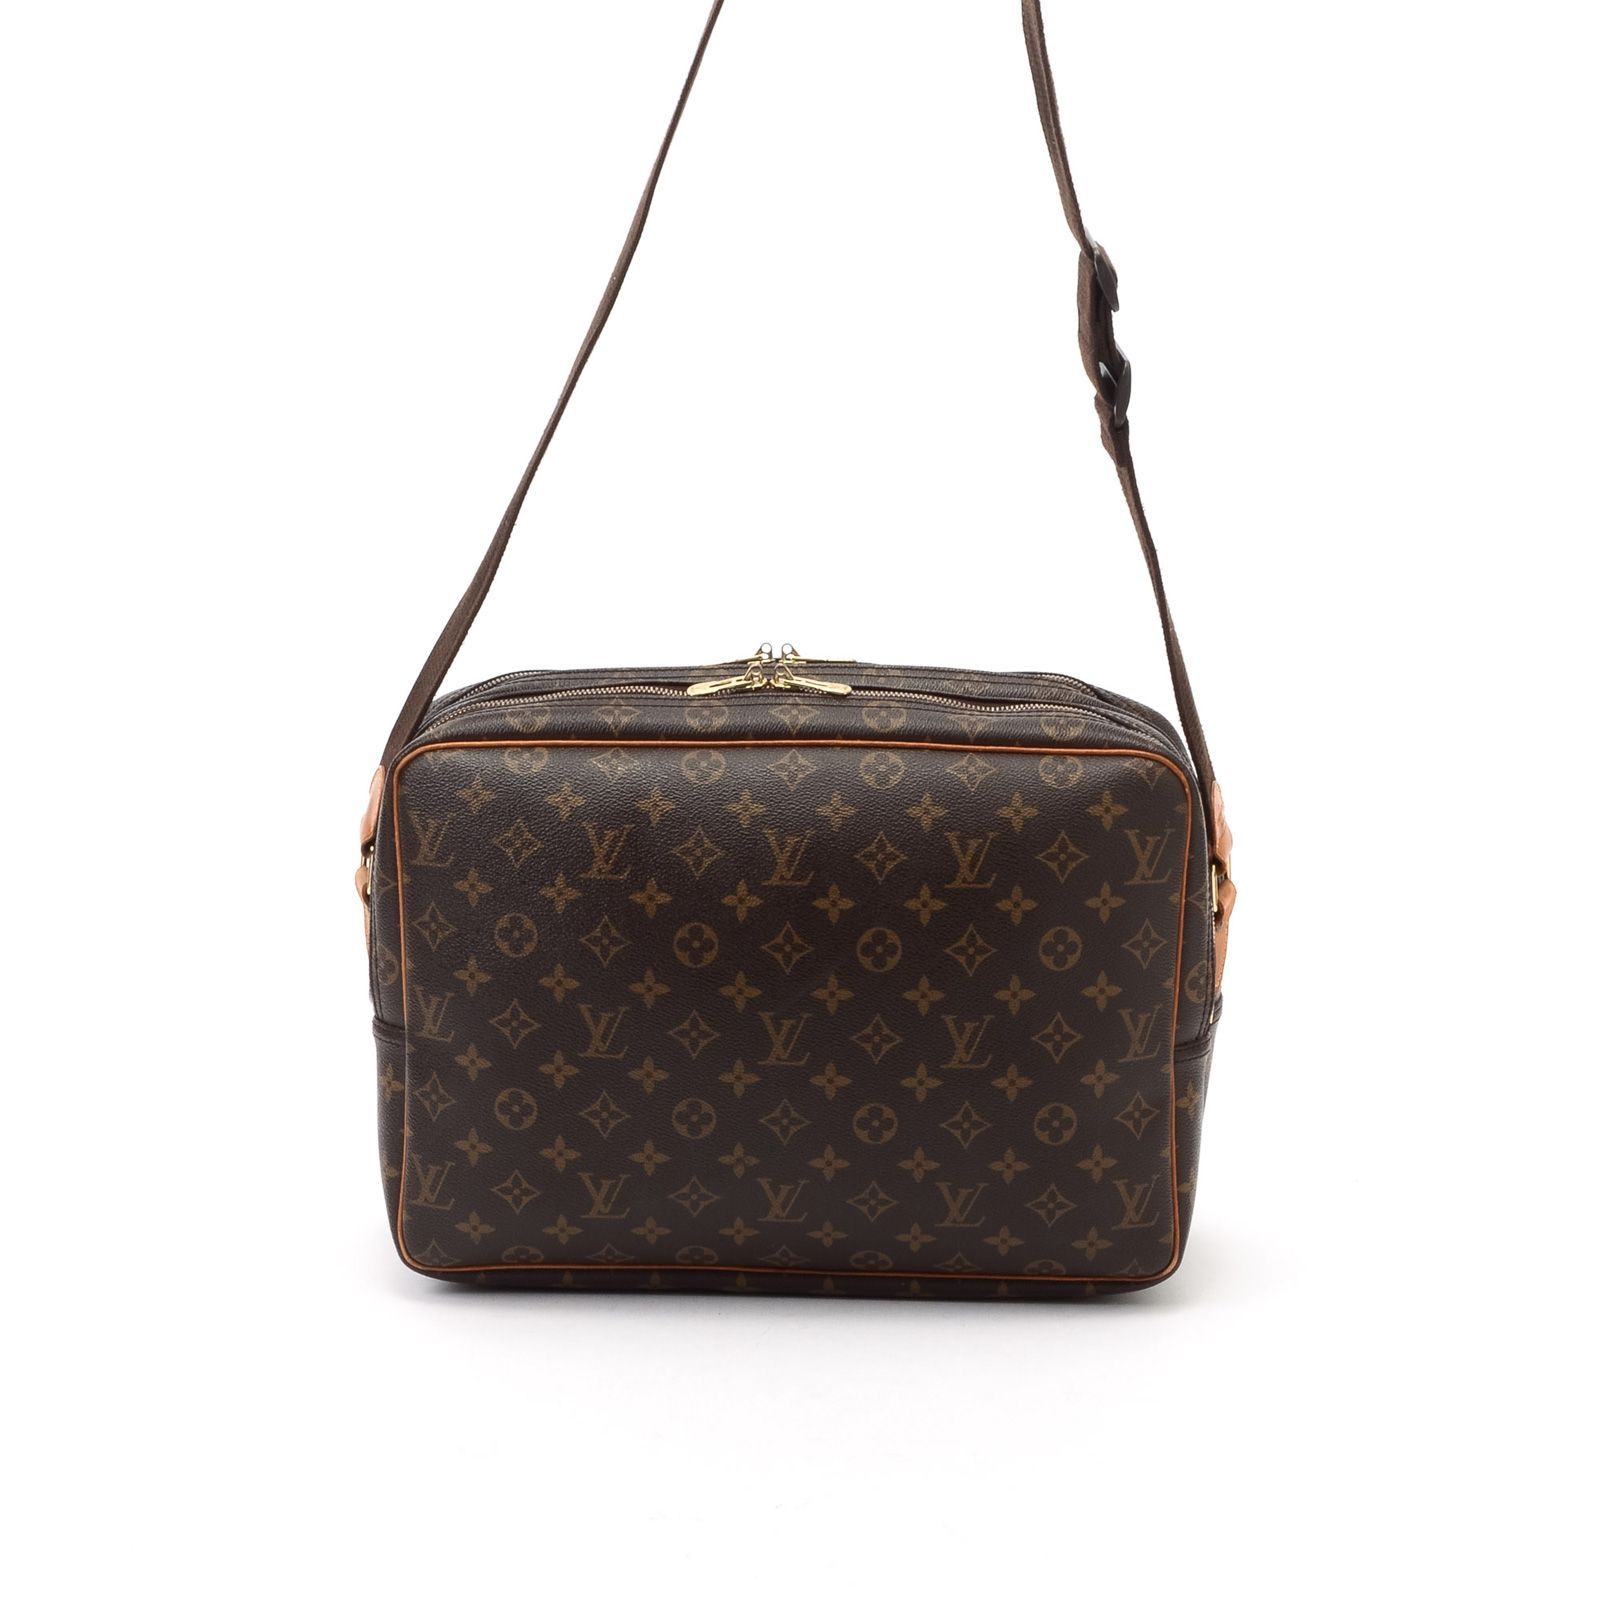 louis vuitton reporter monogram louis vuitton tasche braun brandalley. Black Bedroom Furniture Sets. Home Design Ideas